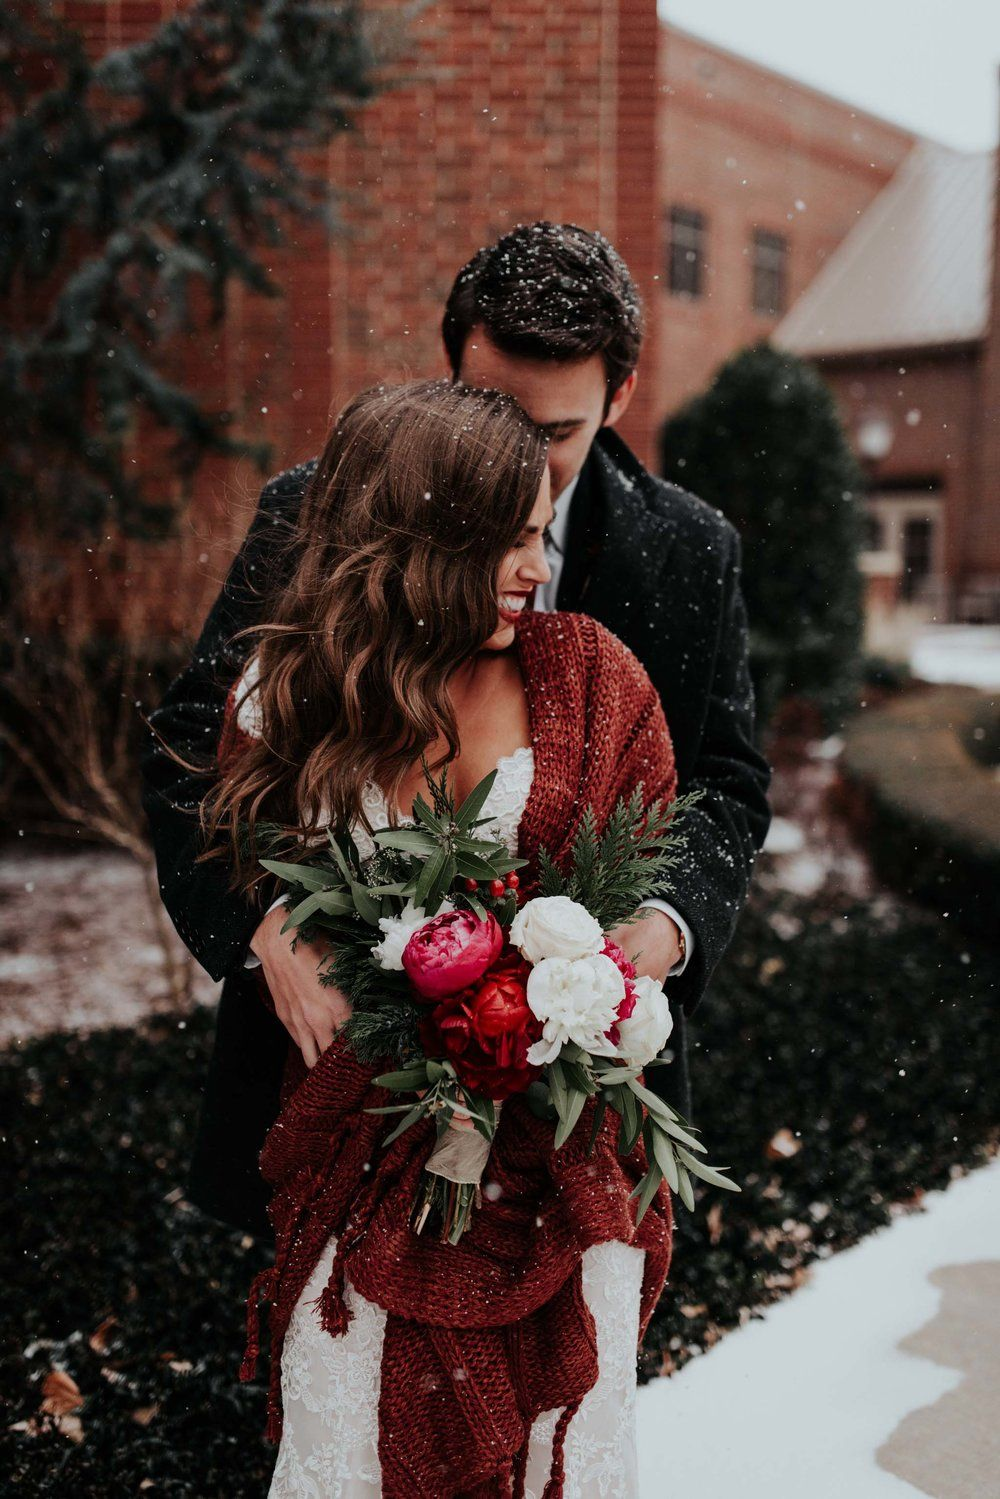 romantic couples wedding photo taken in a snowy day